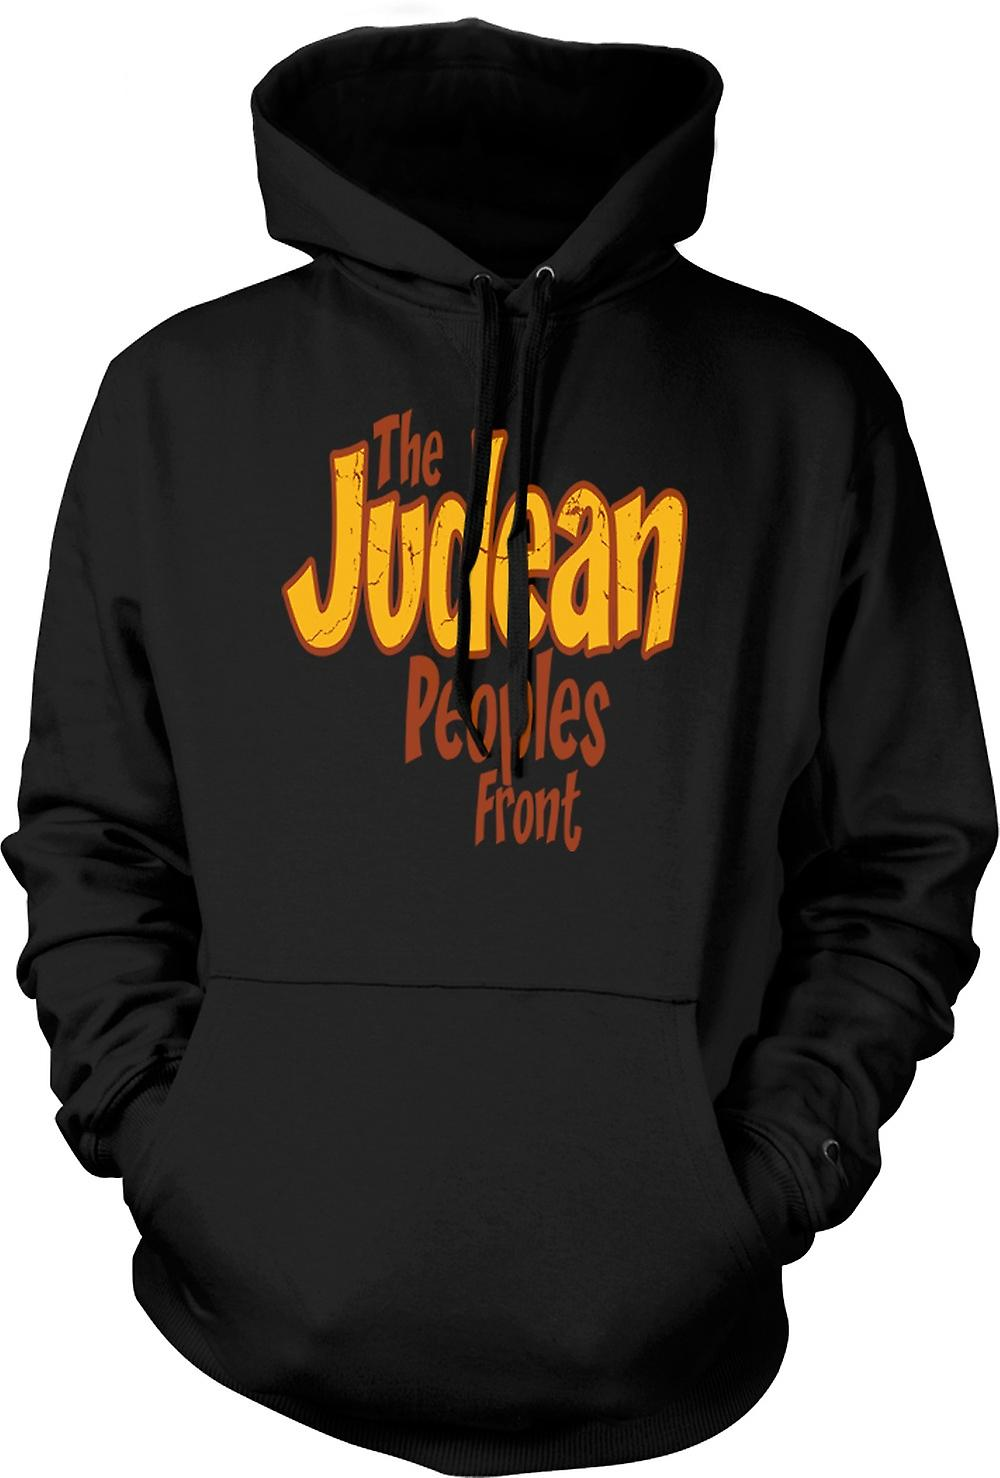 Mens Hoodie - The Judean Peoples Front - Funny Quote